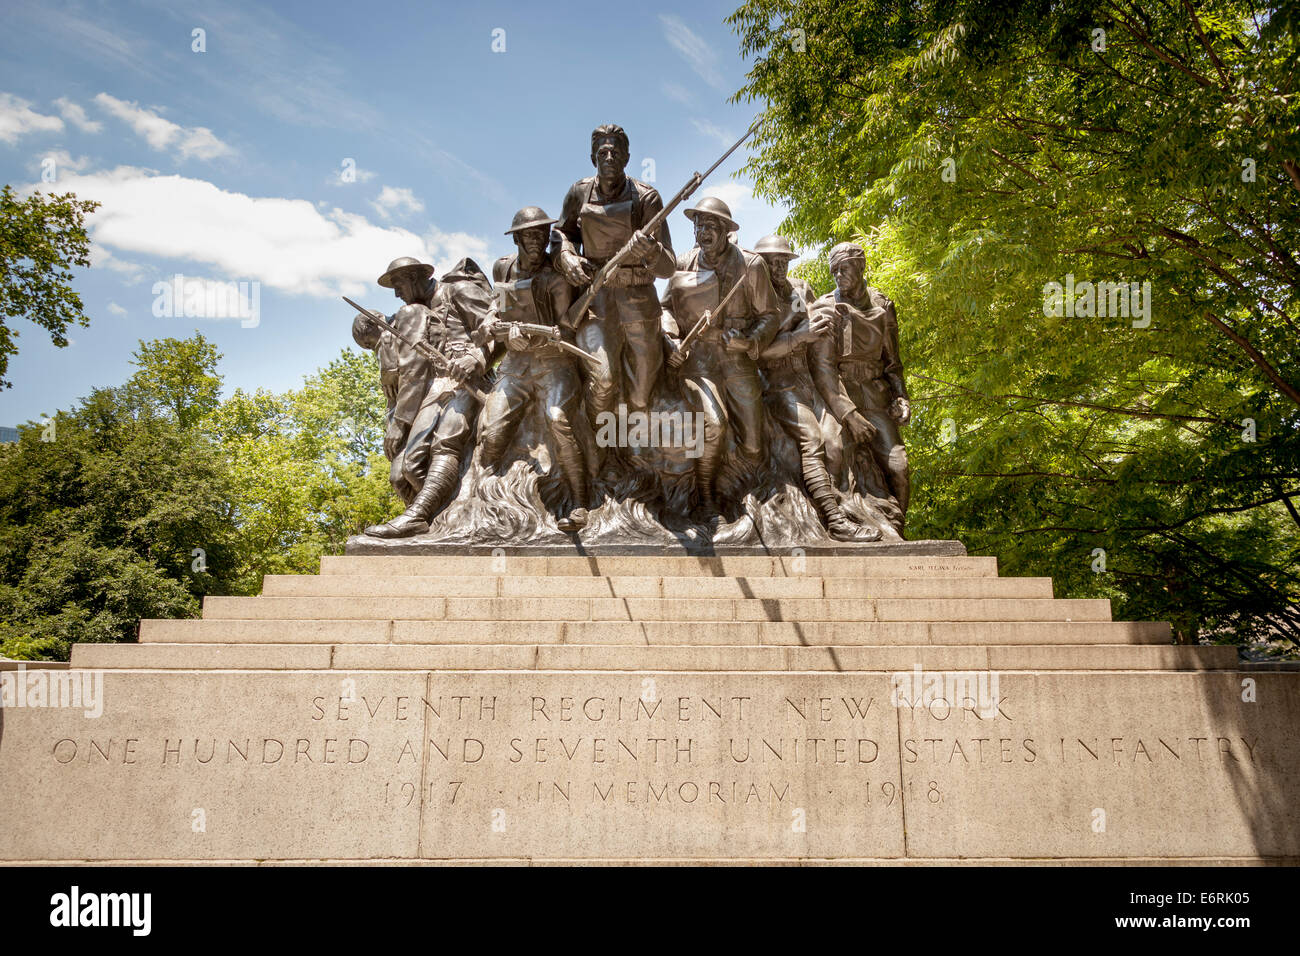 Seventh Regiment 107th United States Infantry Memorial, Central Park, 5th Avenue, Manhattan, New York City, New Stock Photo